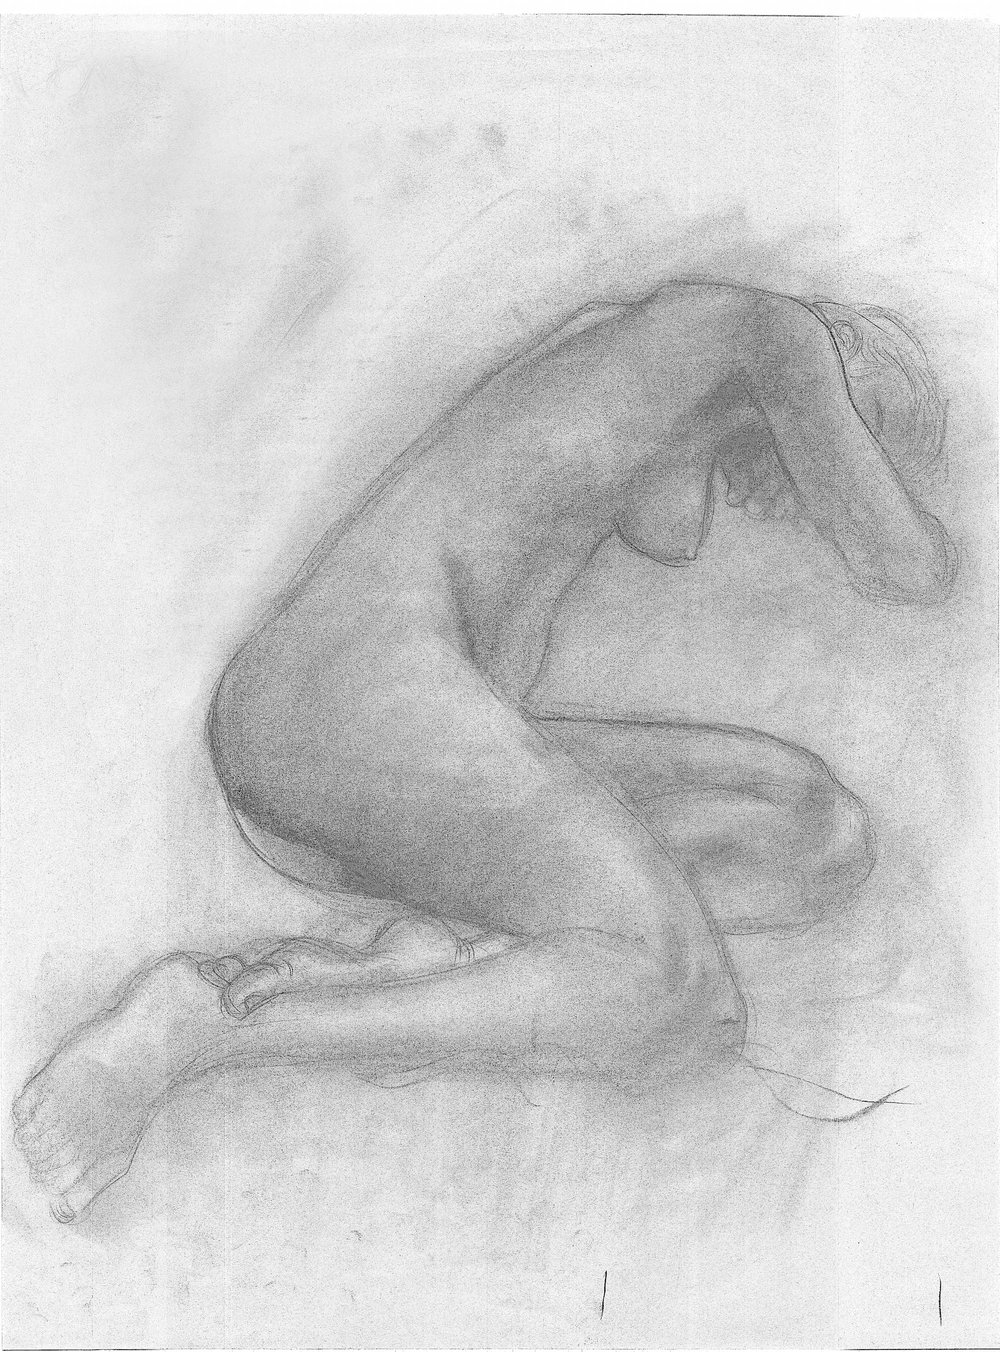 life-drawing-woman-lying-down.jpg